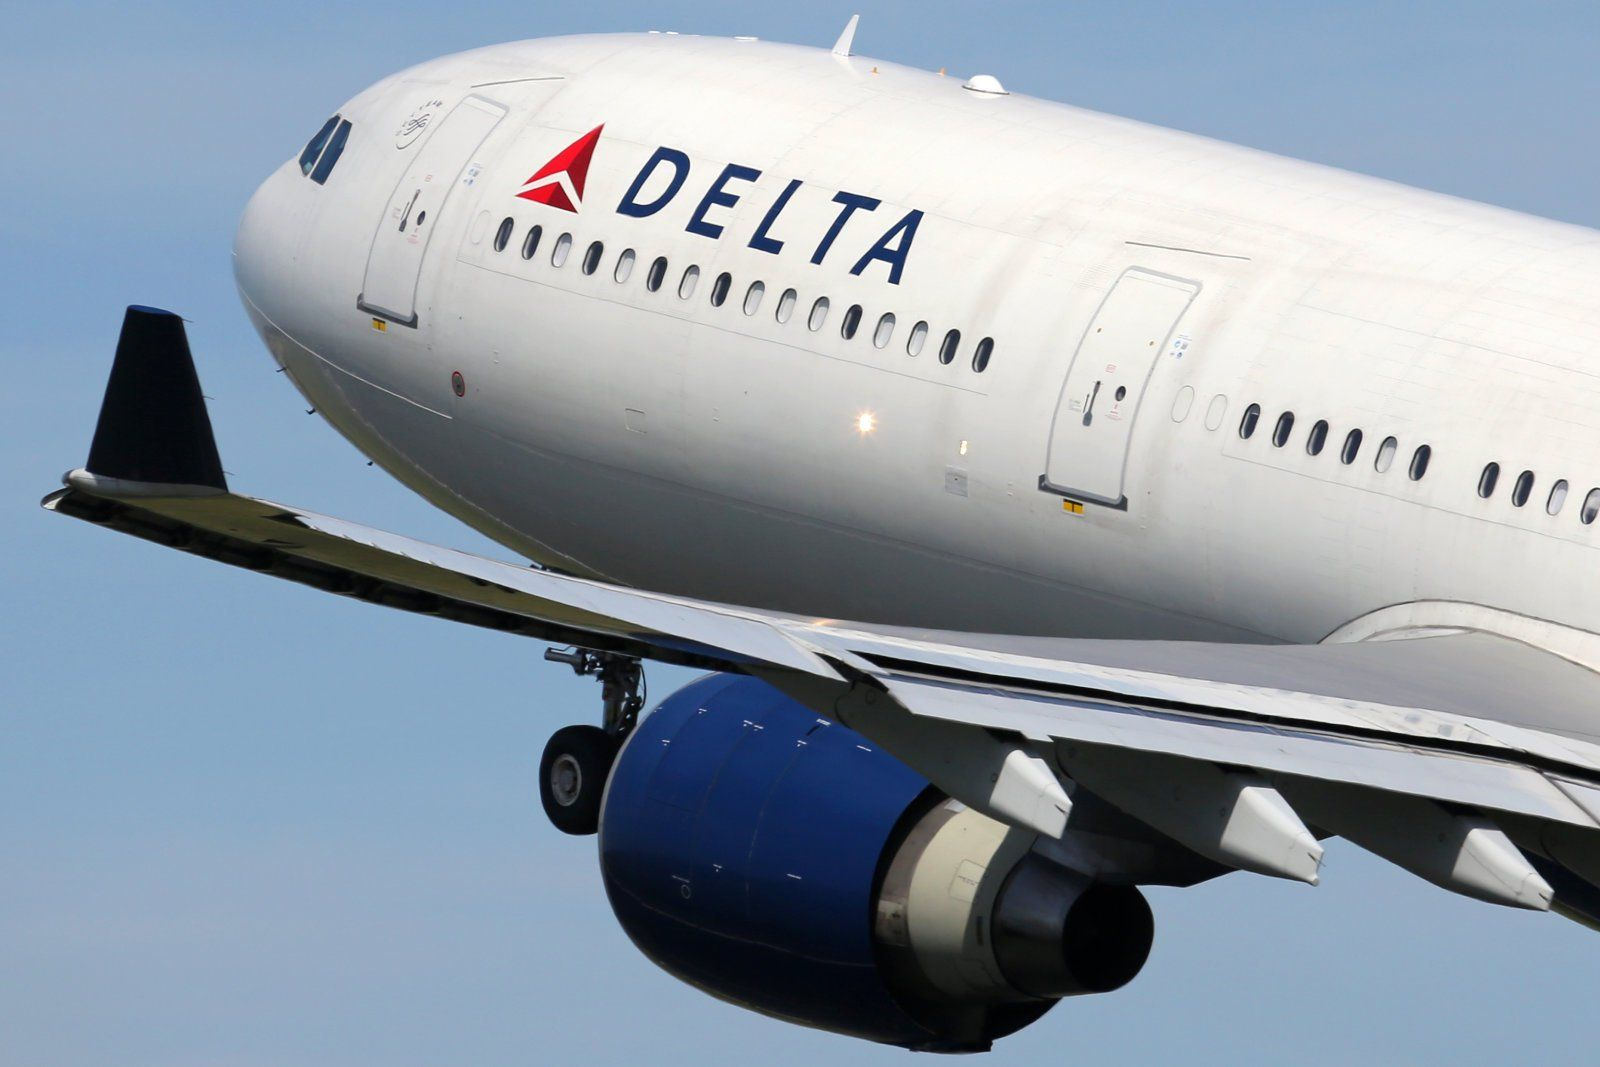 Delta adds free messaging to its WiFienabled flights